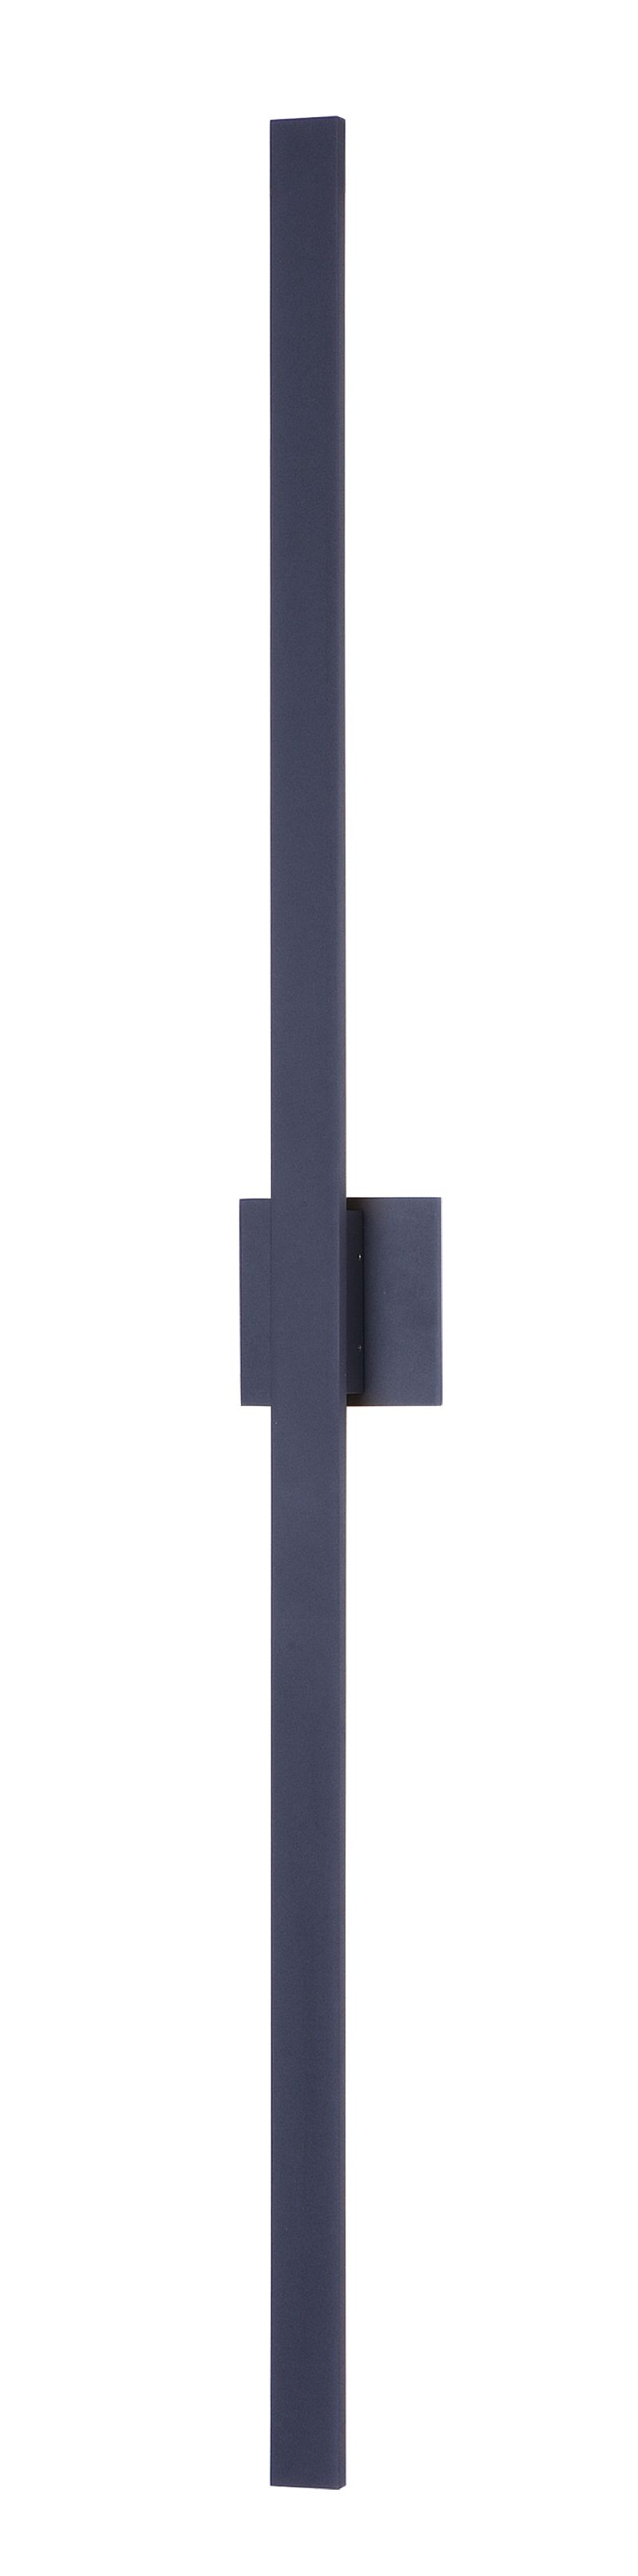 "Alumilux Sconce 4.5"" 2-Light Outdoor Wall Mount - Bronze"